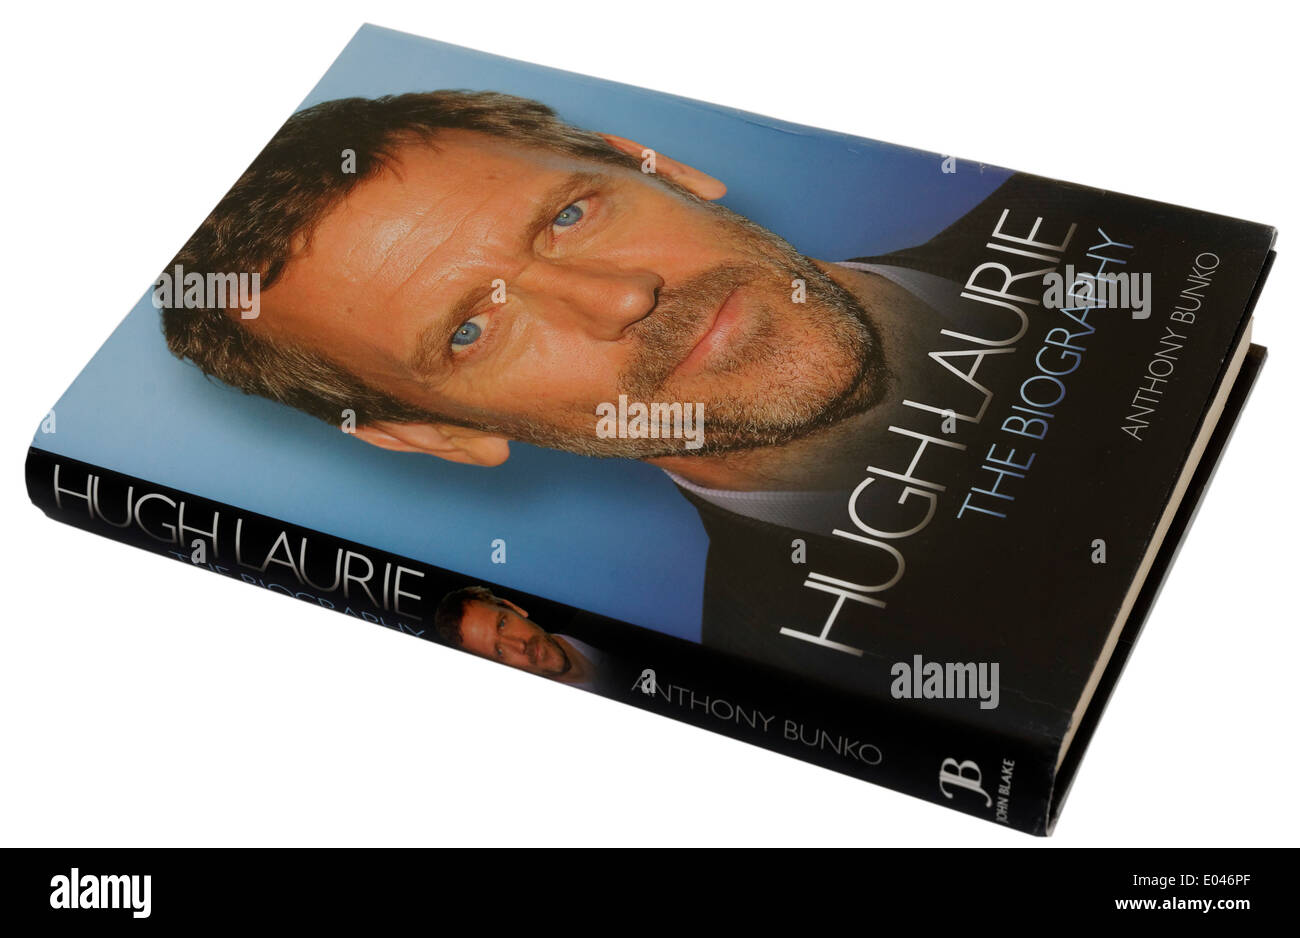 Hugh Laurie biography by Anthony Bunko - Stock Image